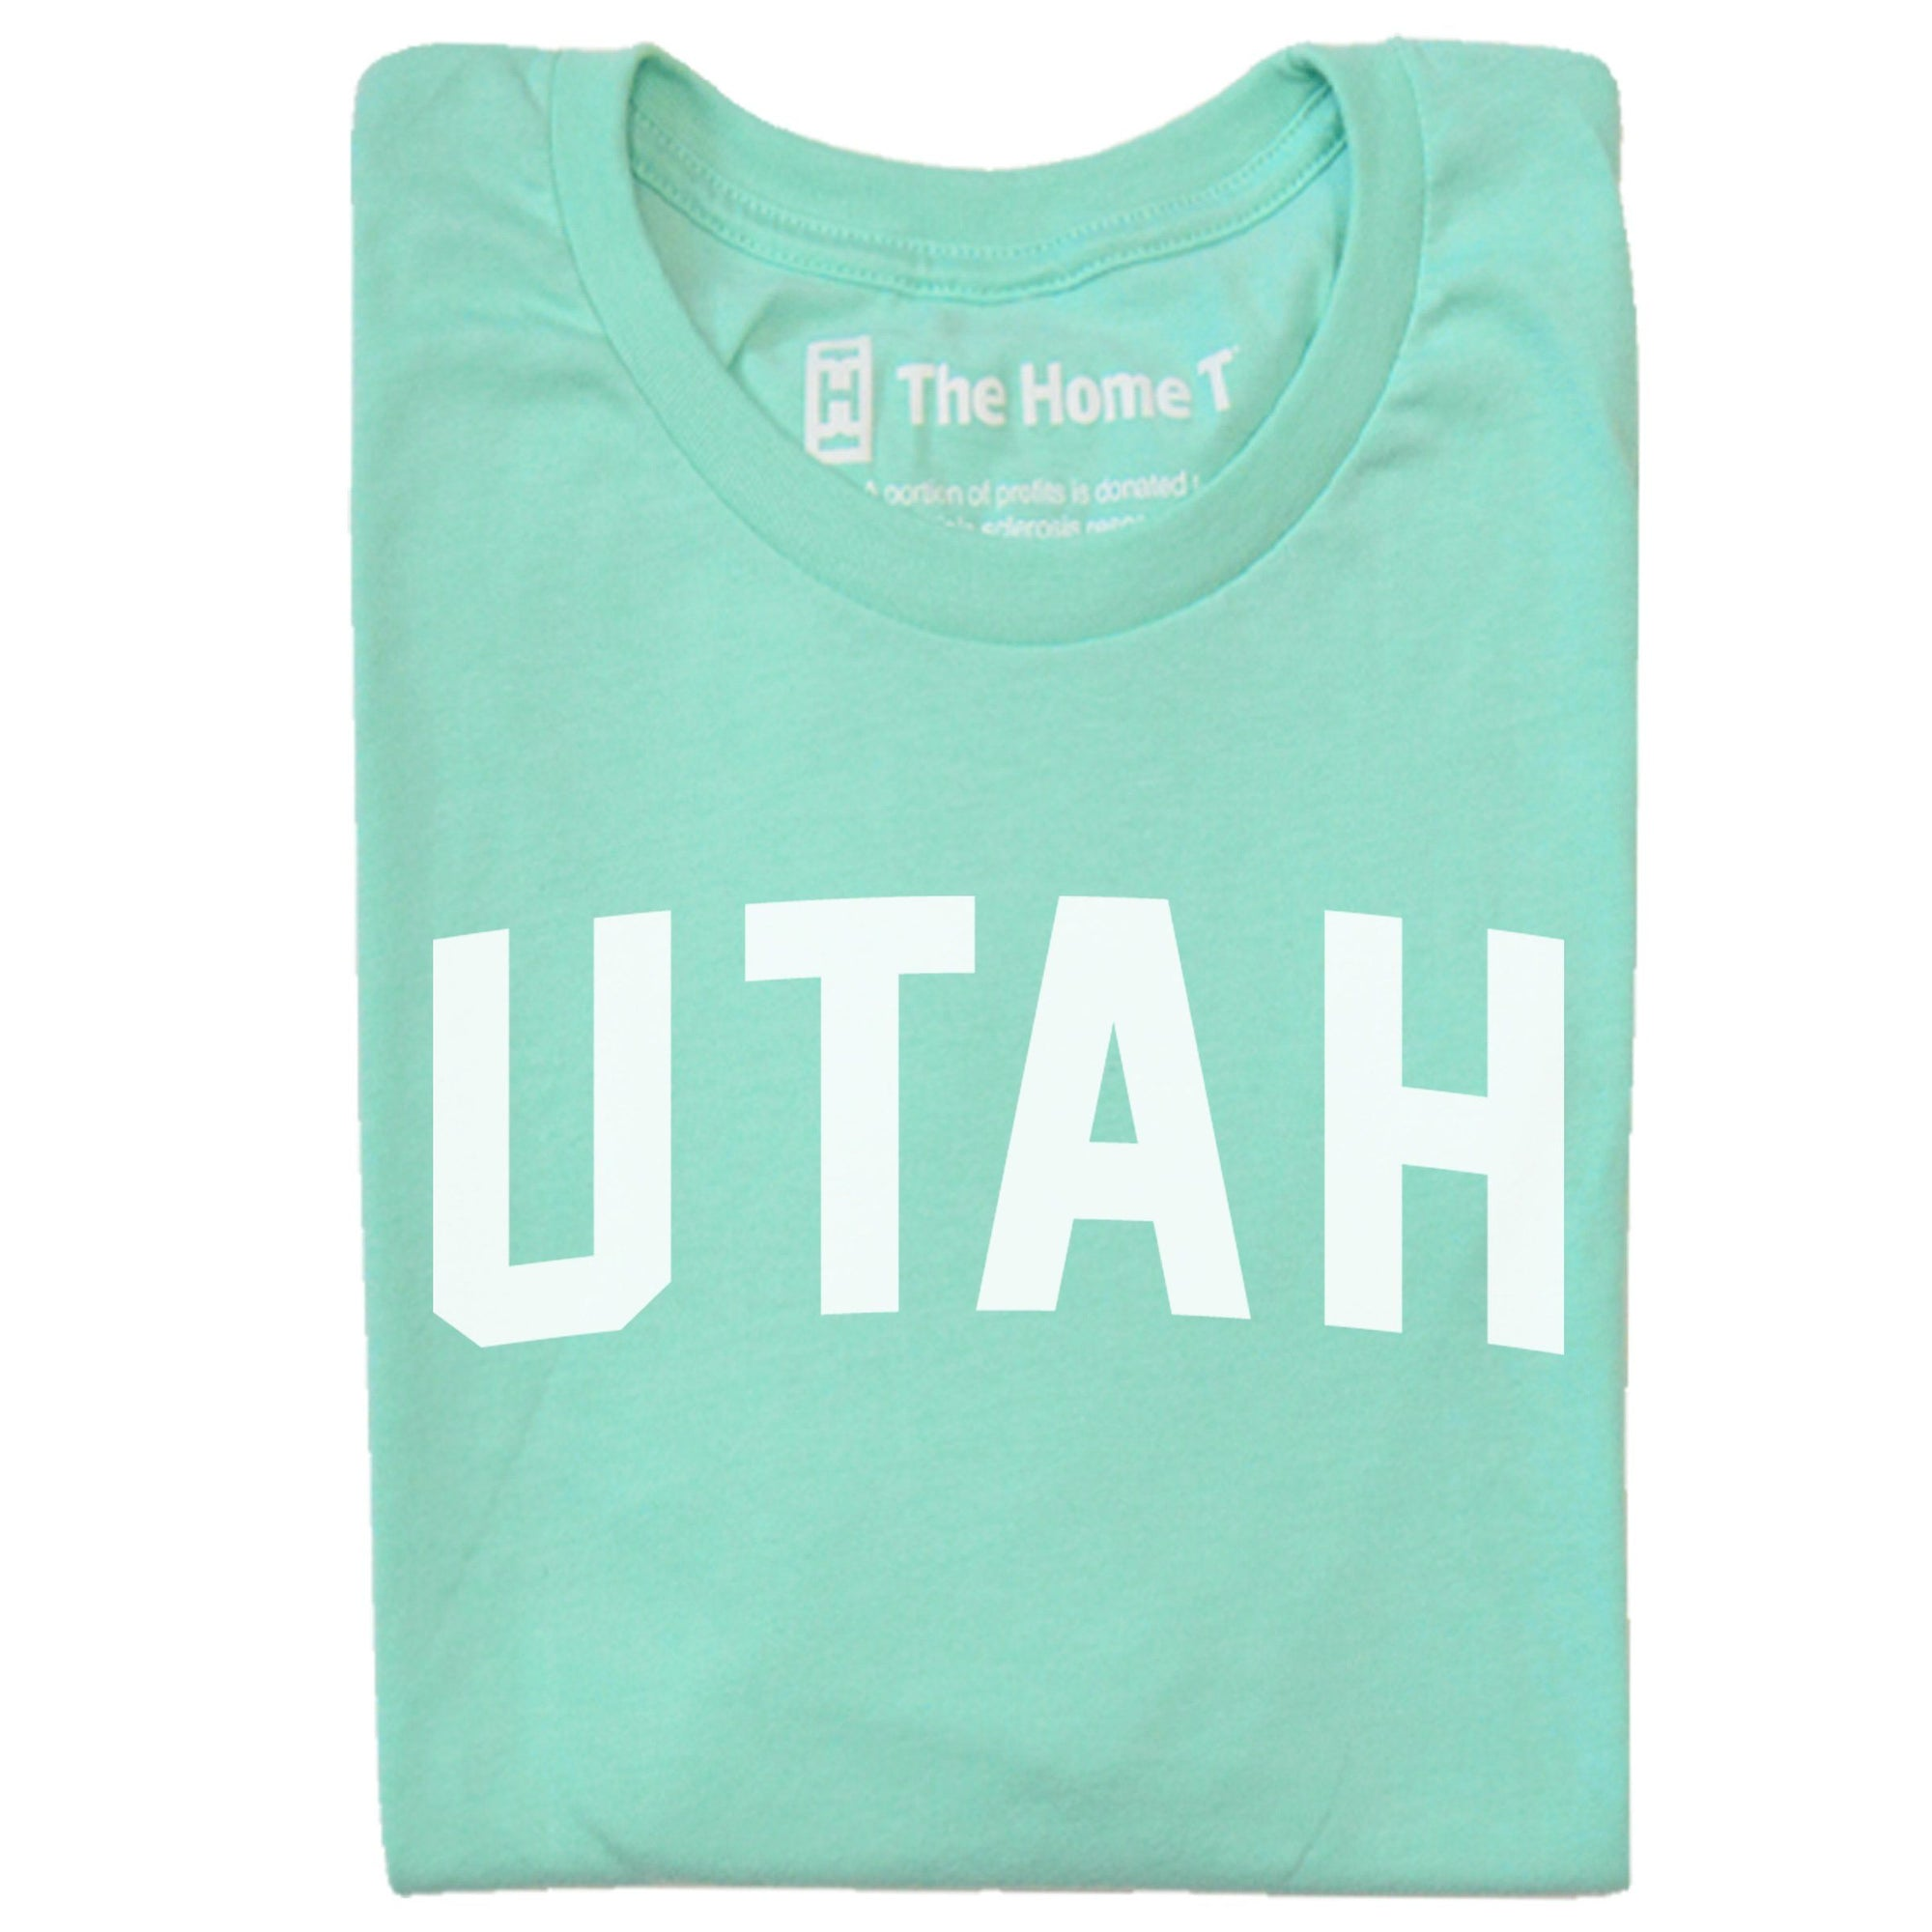 Utah Arched The Home T XS Mint